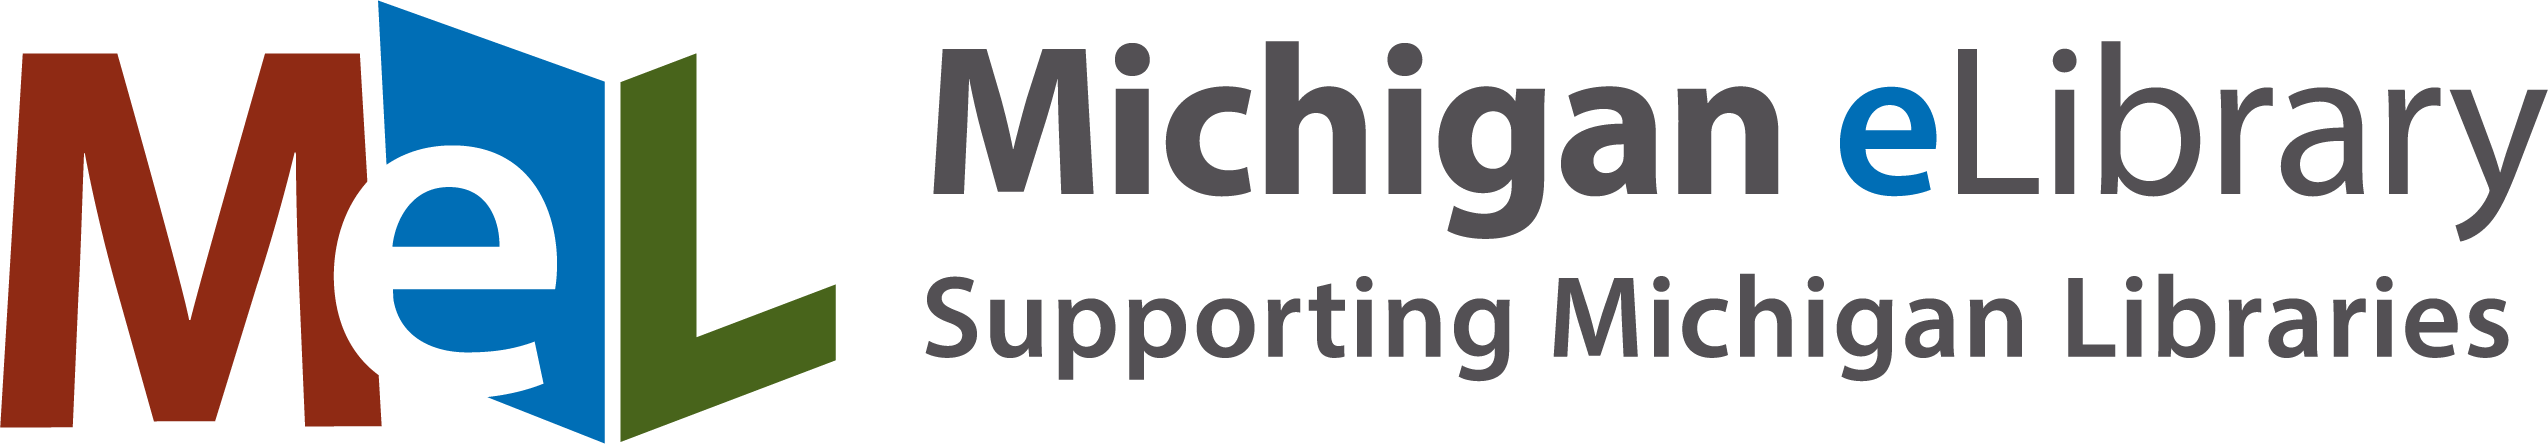 Michigan eLibrary